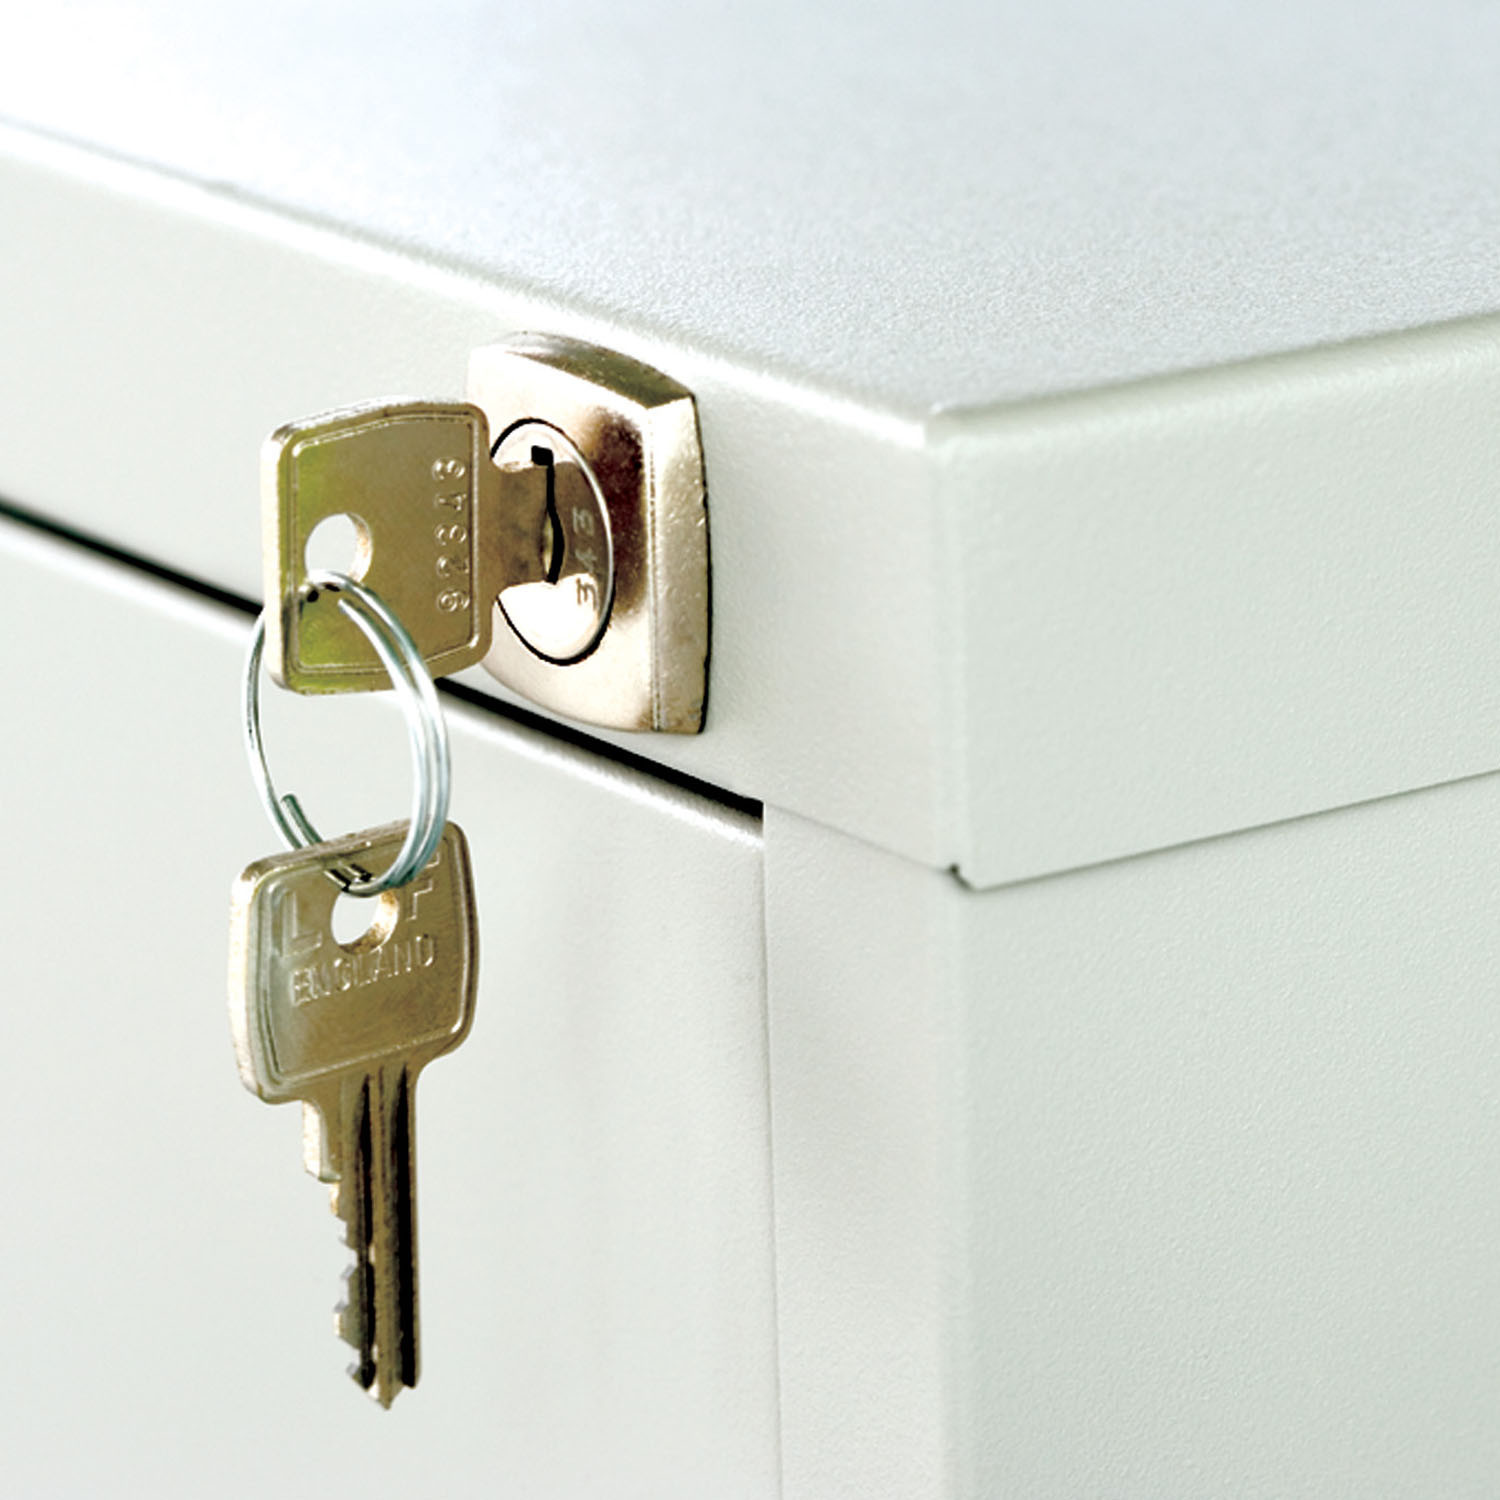 CC Filing Storage fitted with mastered lock